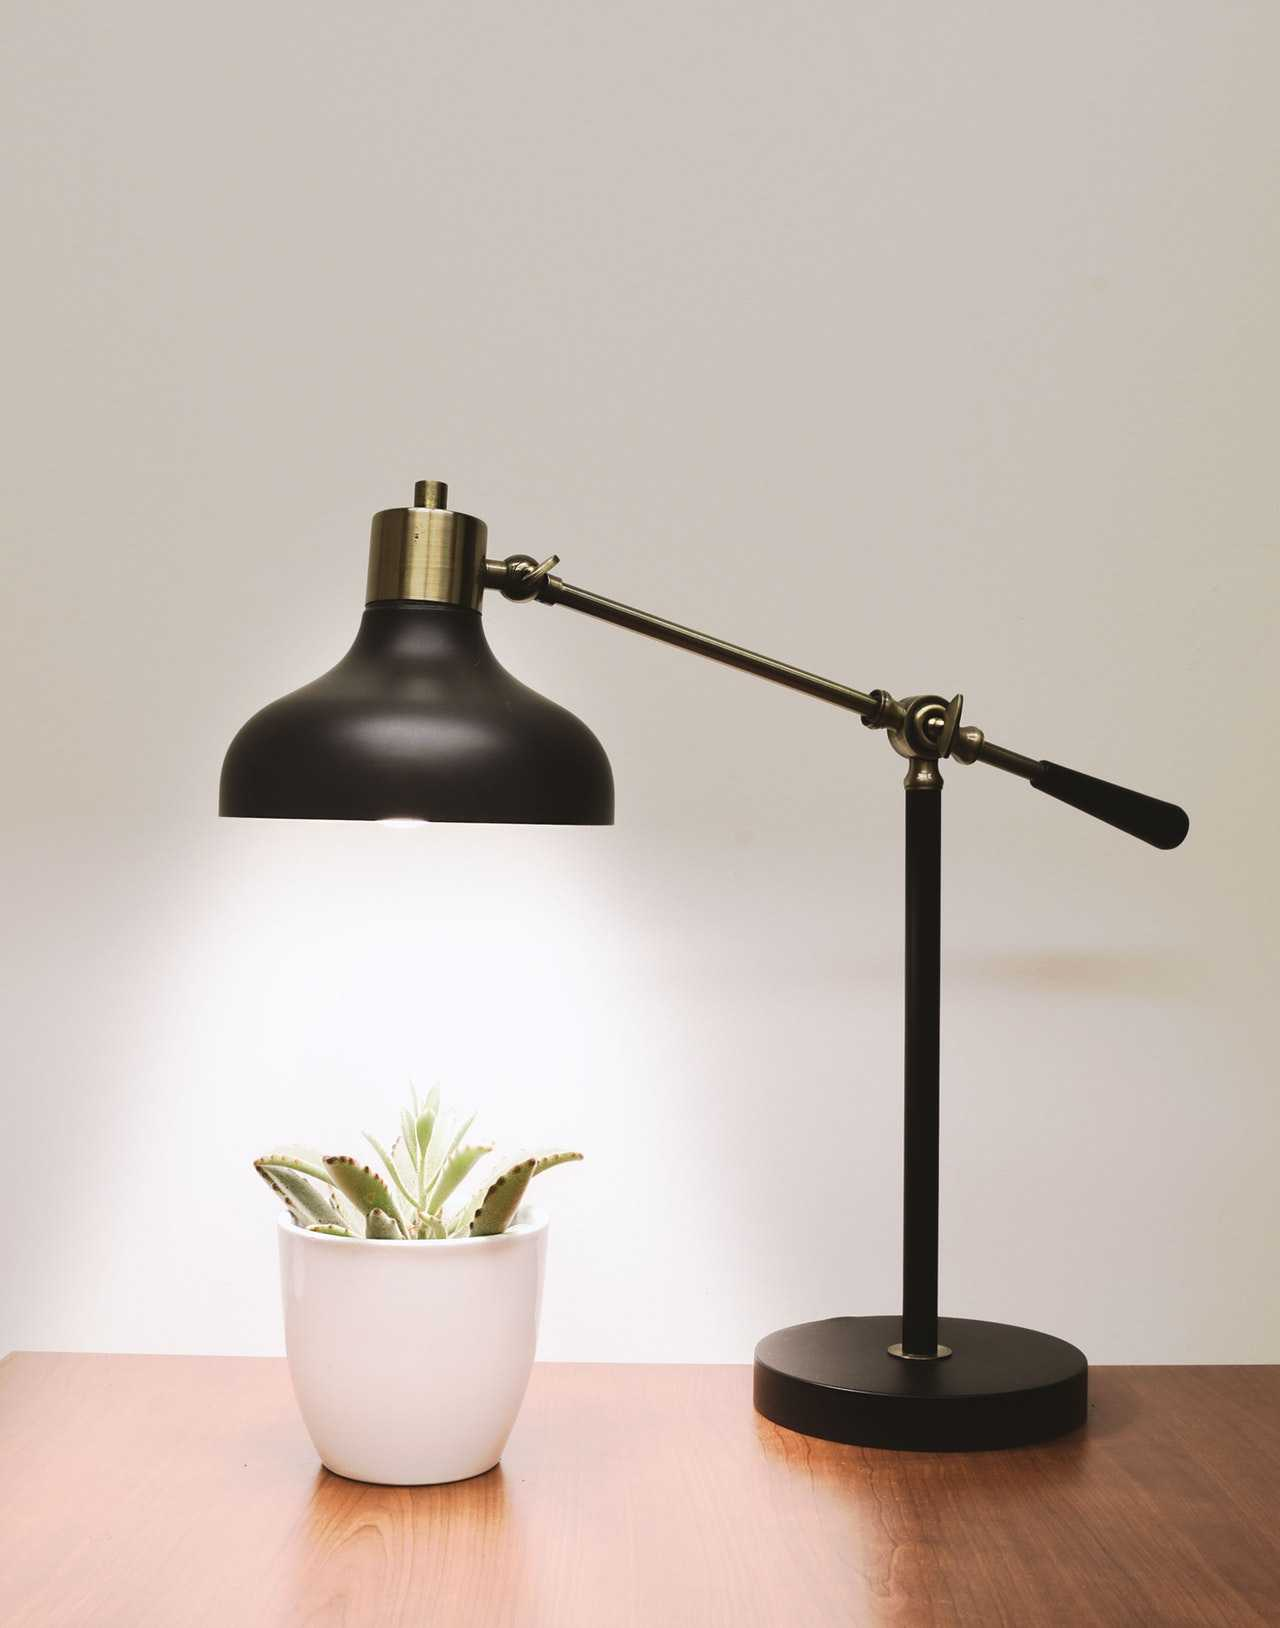 Looking for bright desk organization ideas? A desk lamp will make your office shine!